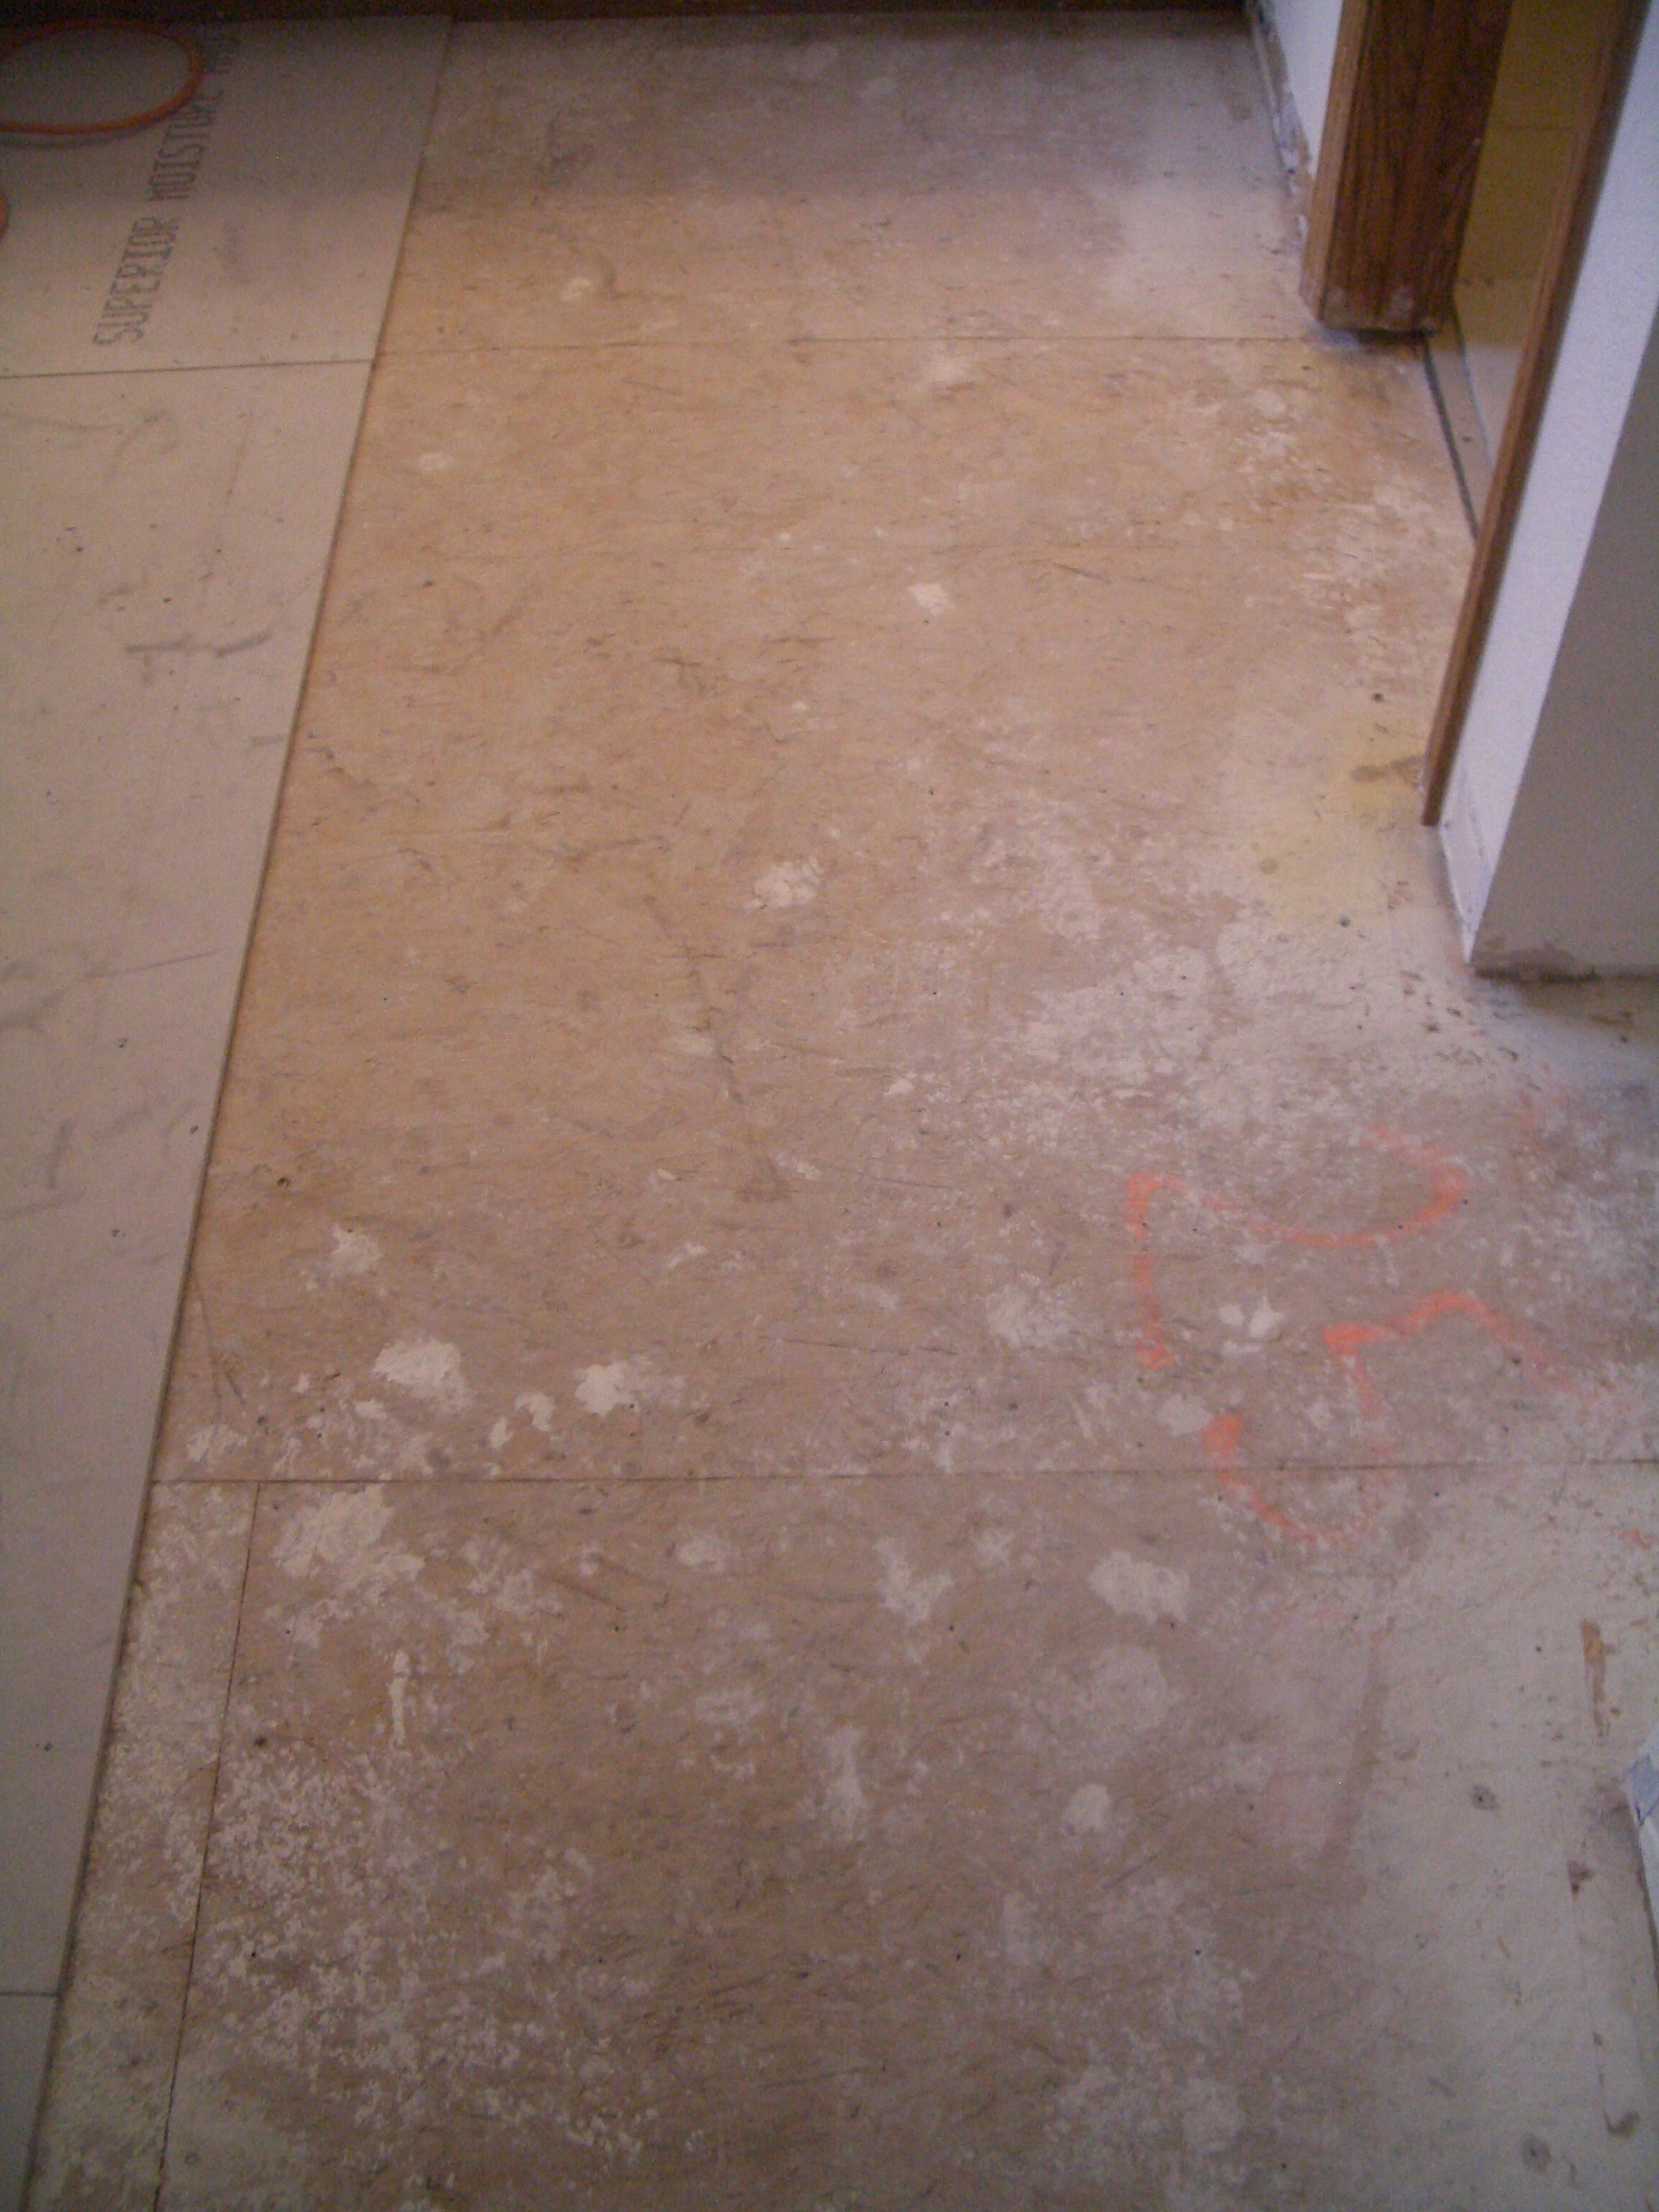 How to install cement backerboard for floor tile dry fitting backerboard on floor dailygadgetfo Gallery